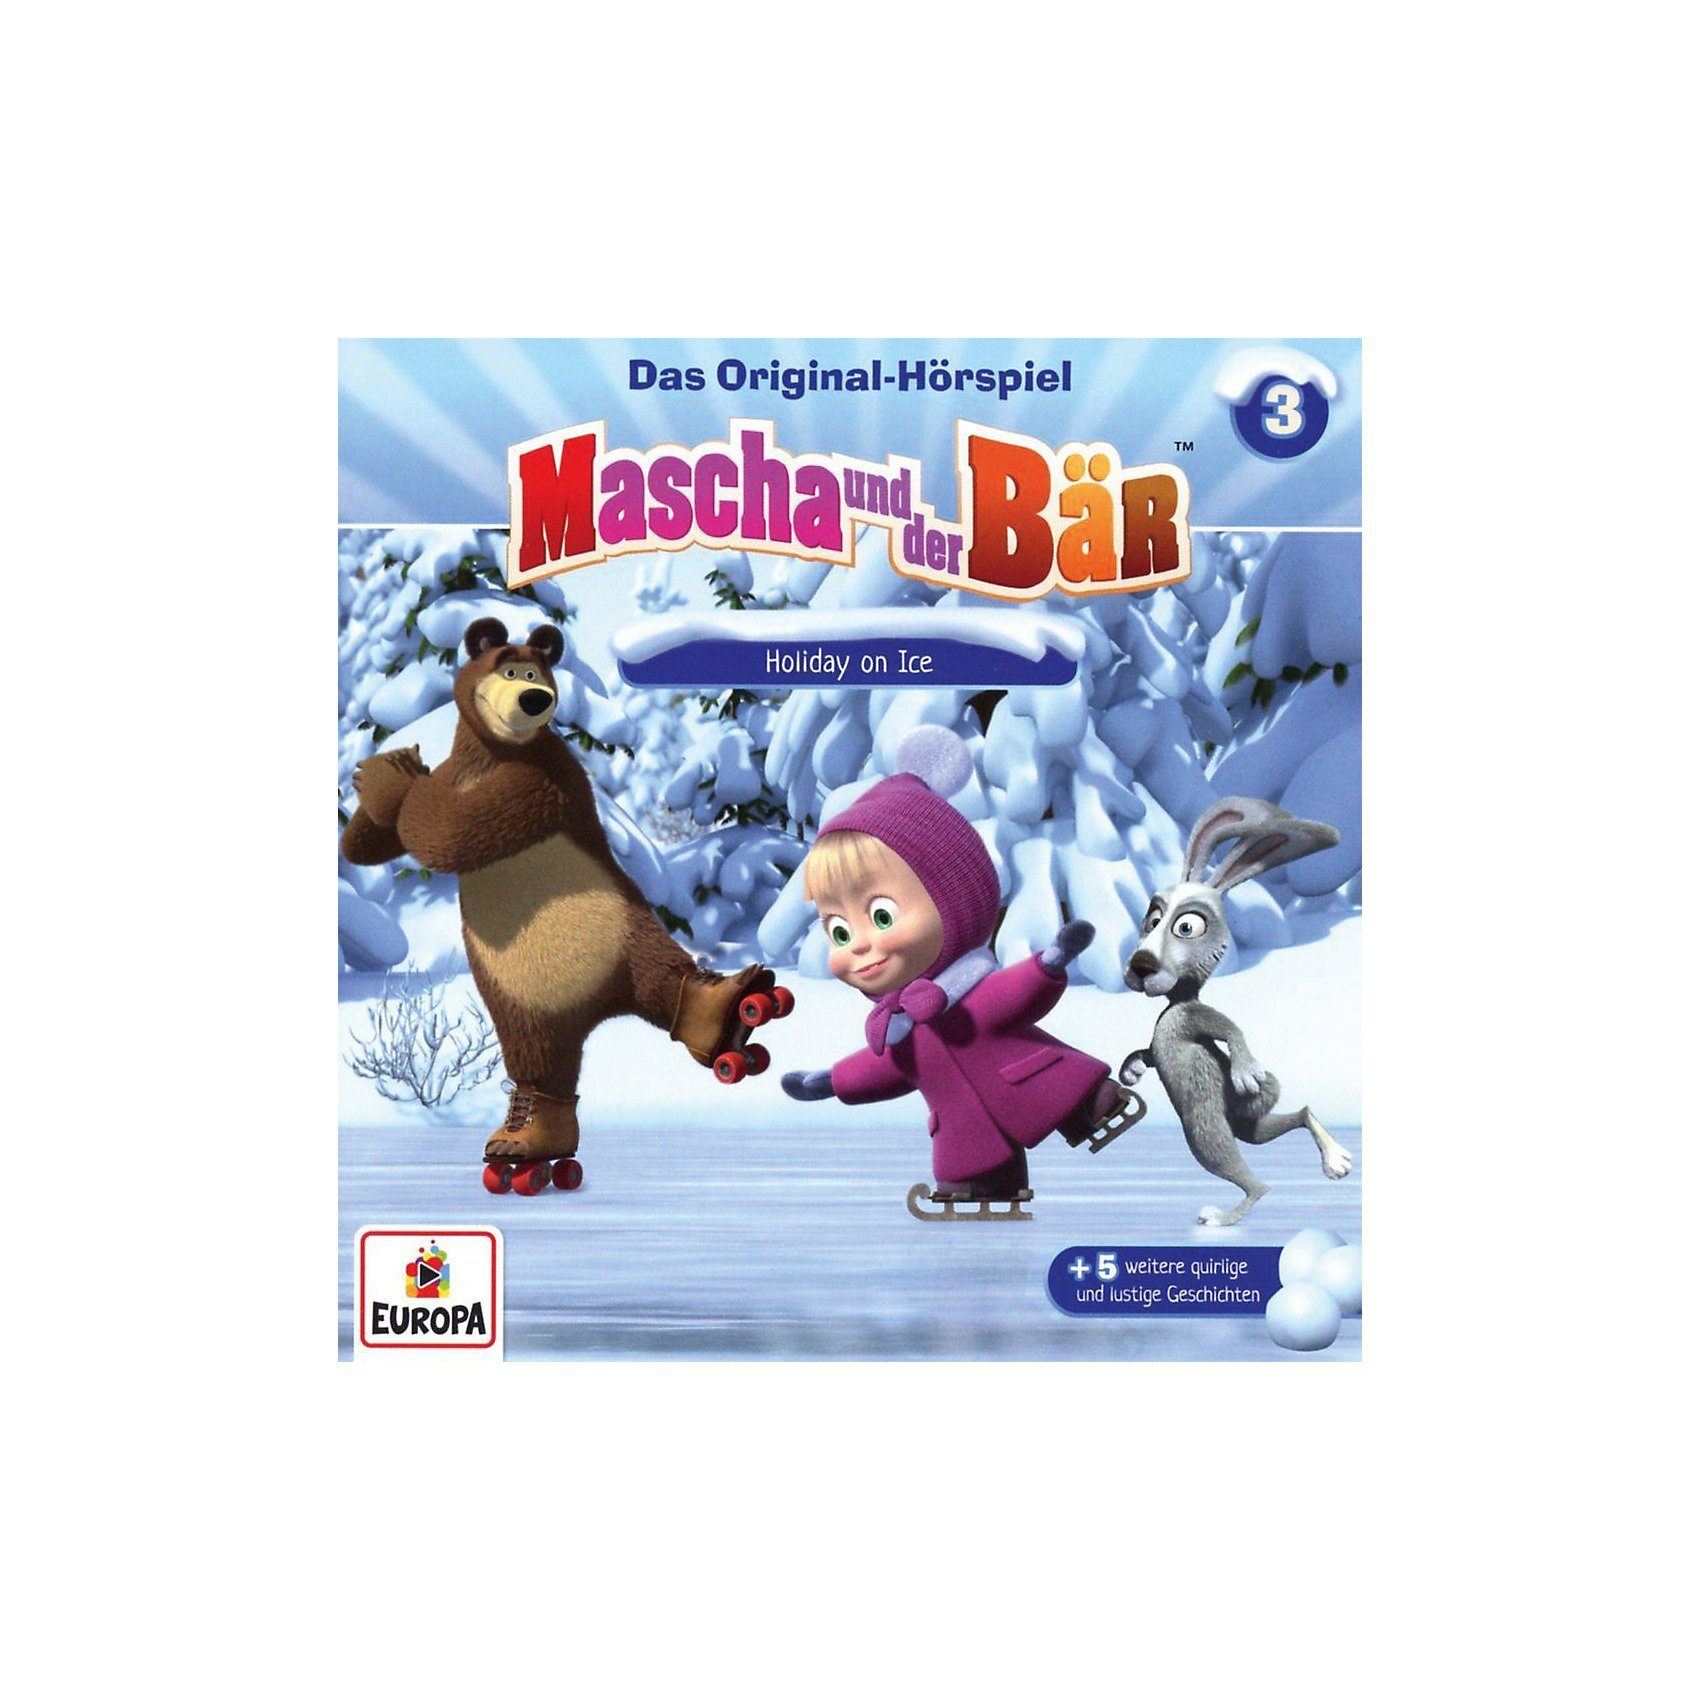 Sony CD Mascha und der Bär 3 - Holiday on Ice